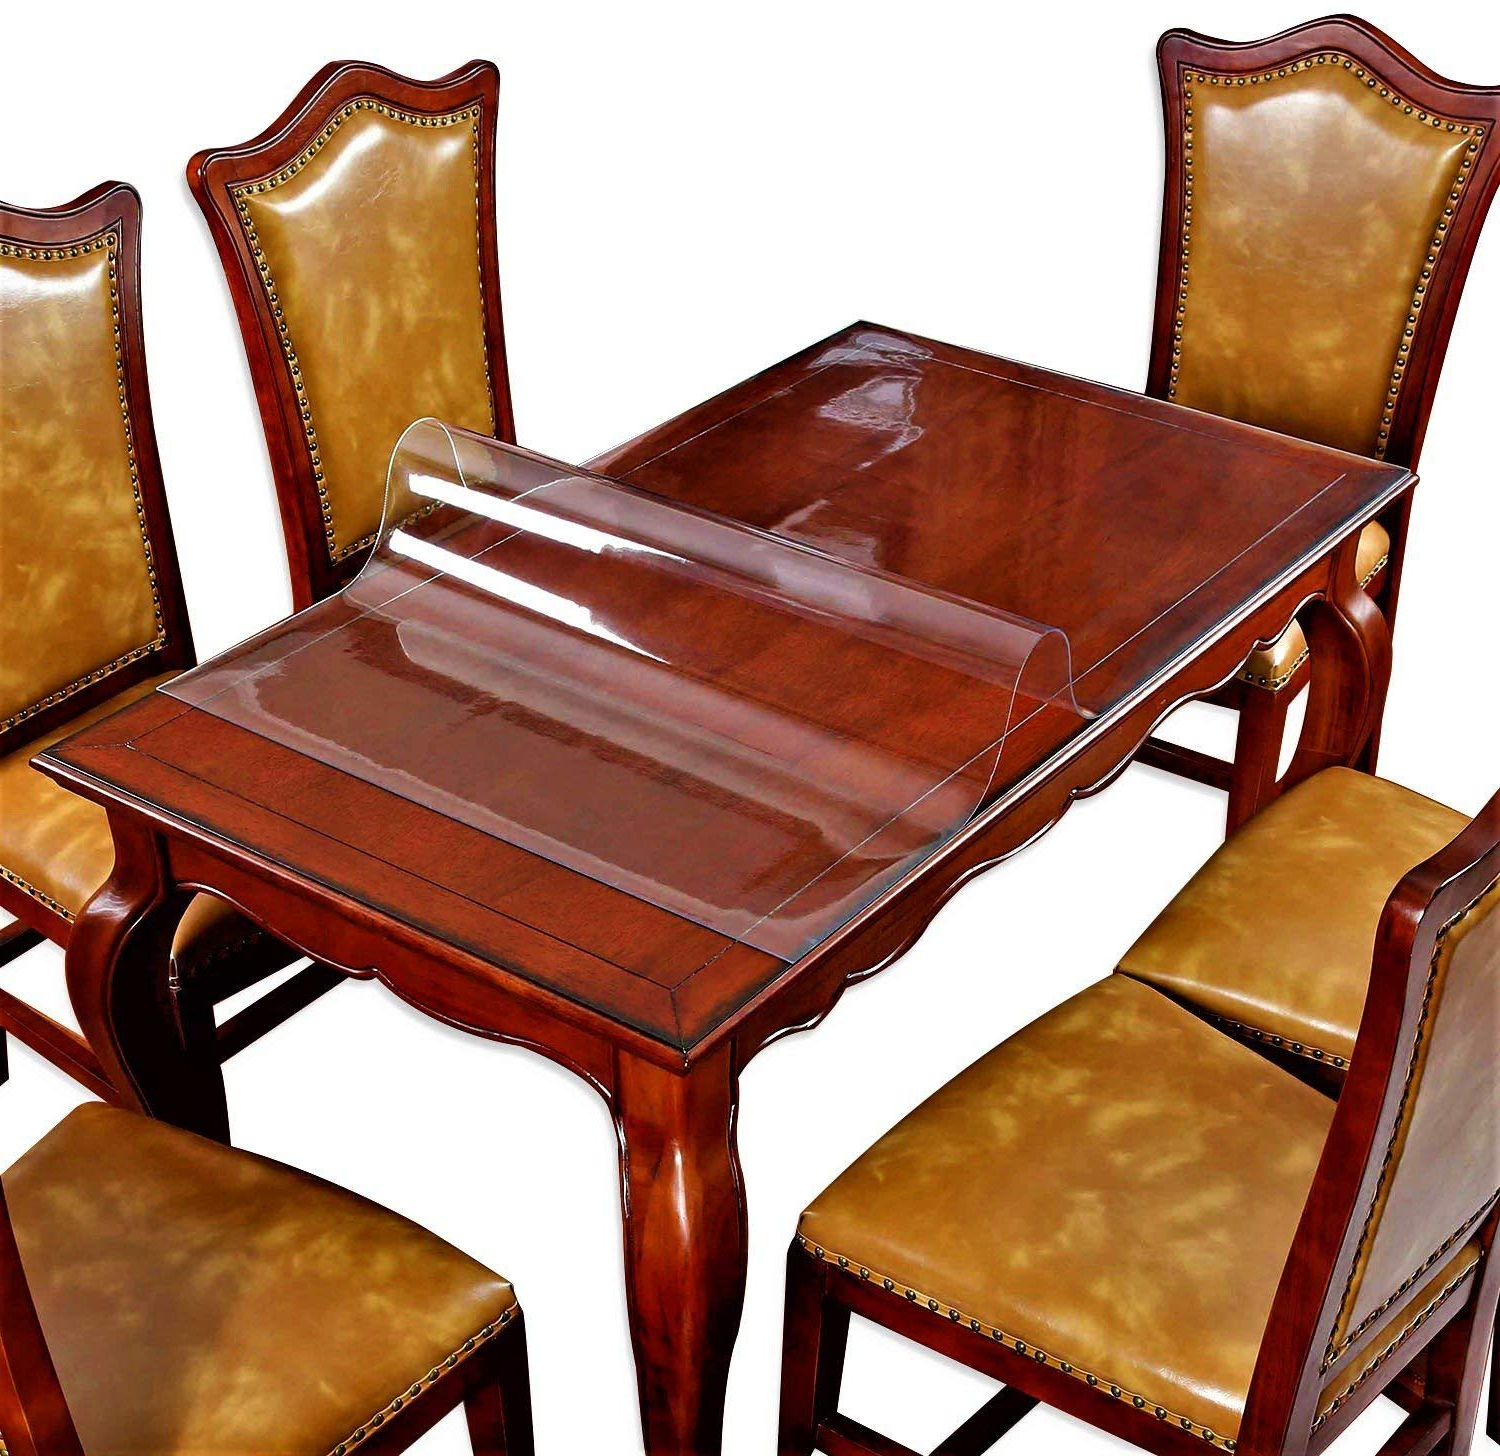 Current Clear Table Cover Protector Desk Pads Mats Wood Furniture Protective For  Large Pub Bar Tabletop Countertop Topper Dining Coffee End Plastic  Tablecloth Throughout Presson 3 Piece Counter Height Dining Sets (View 4 of 20)